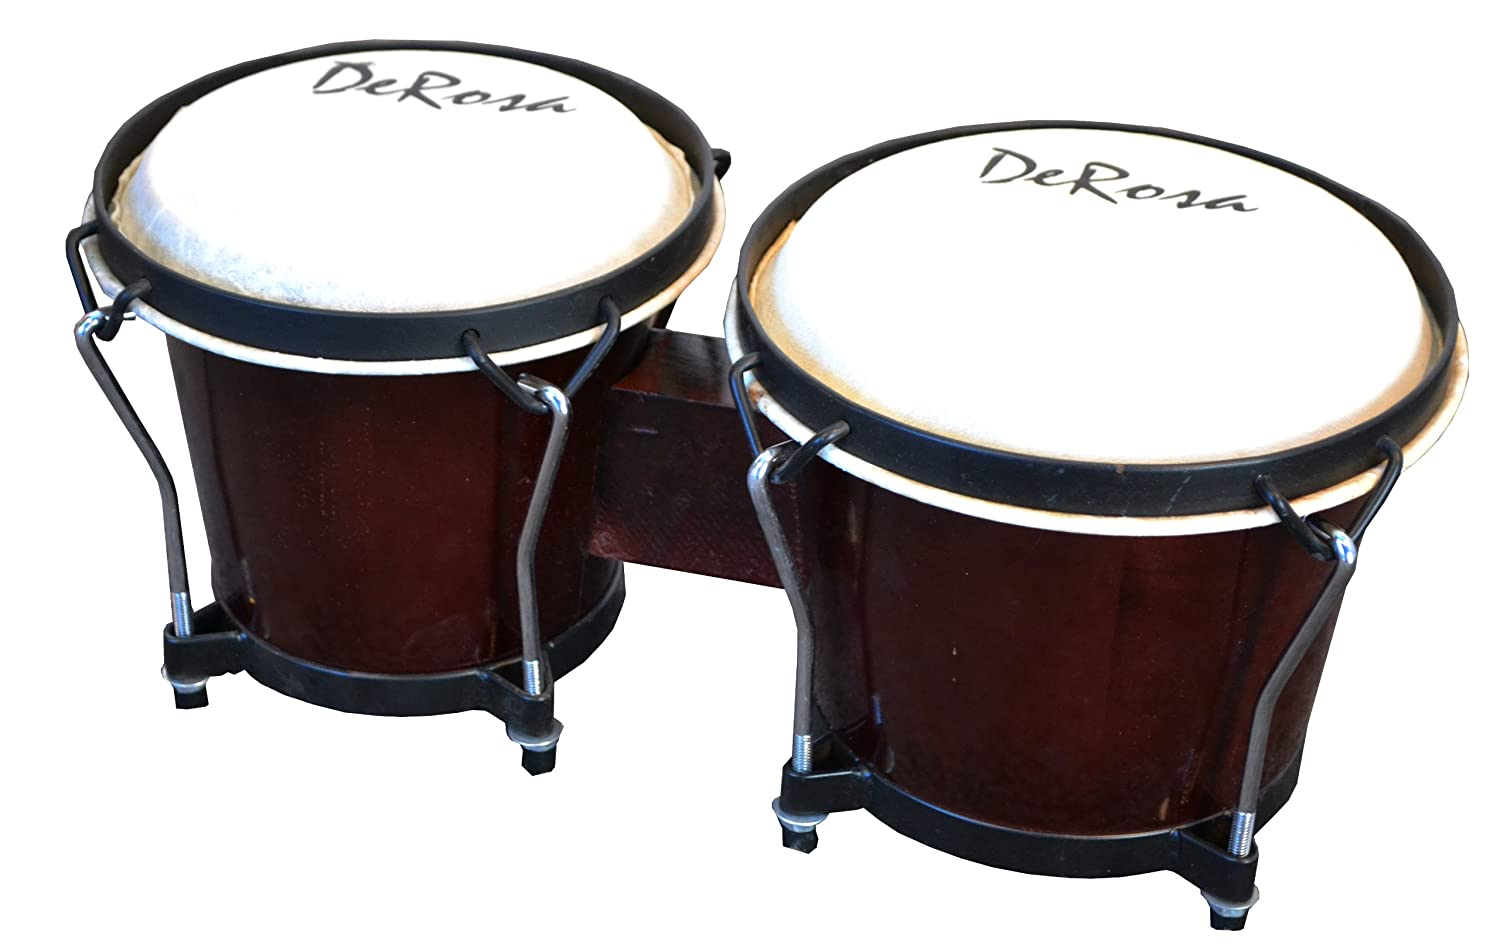 De Rosa Beginner BOG78-DB 7 and 8-Inch Bongo Drum, Dark Brown